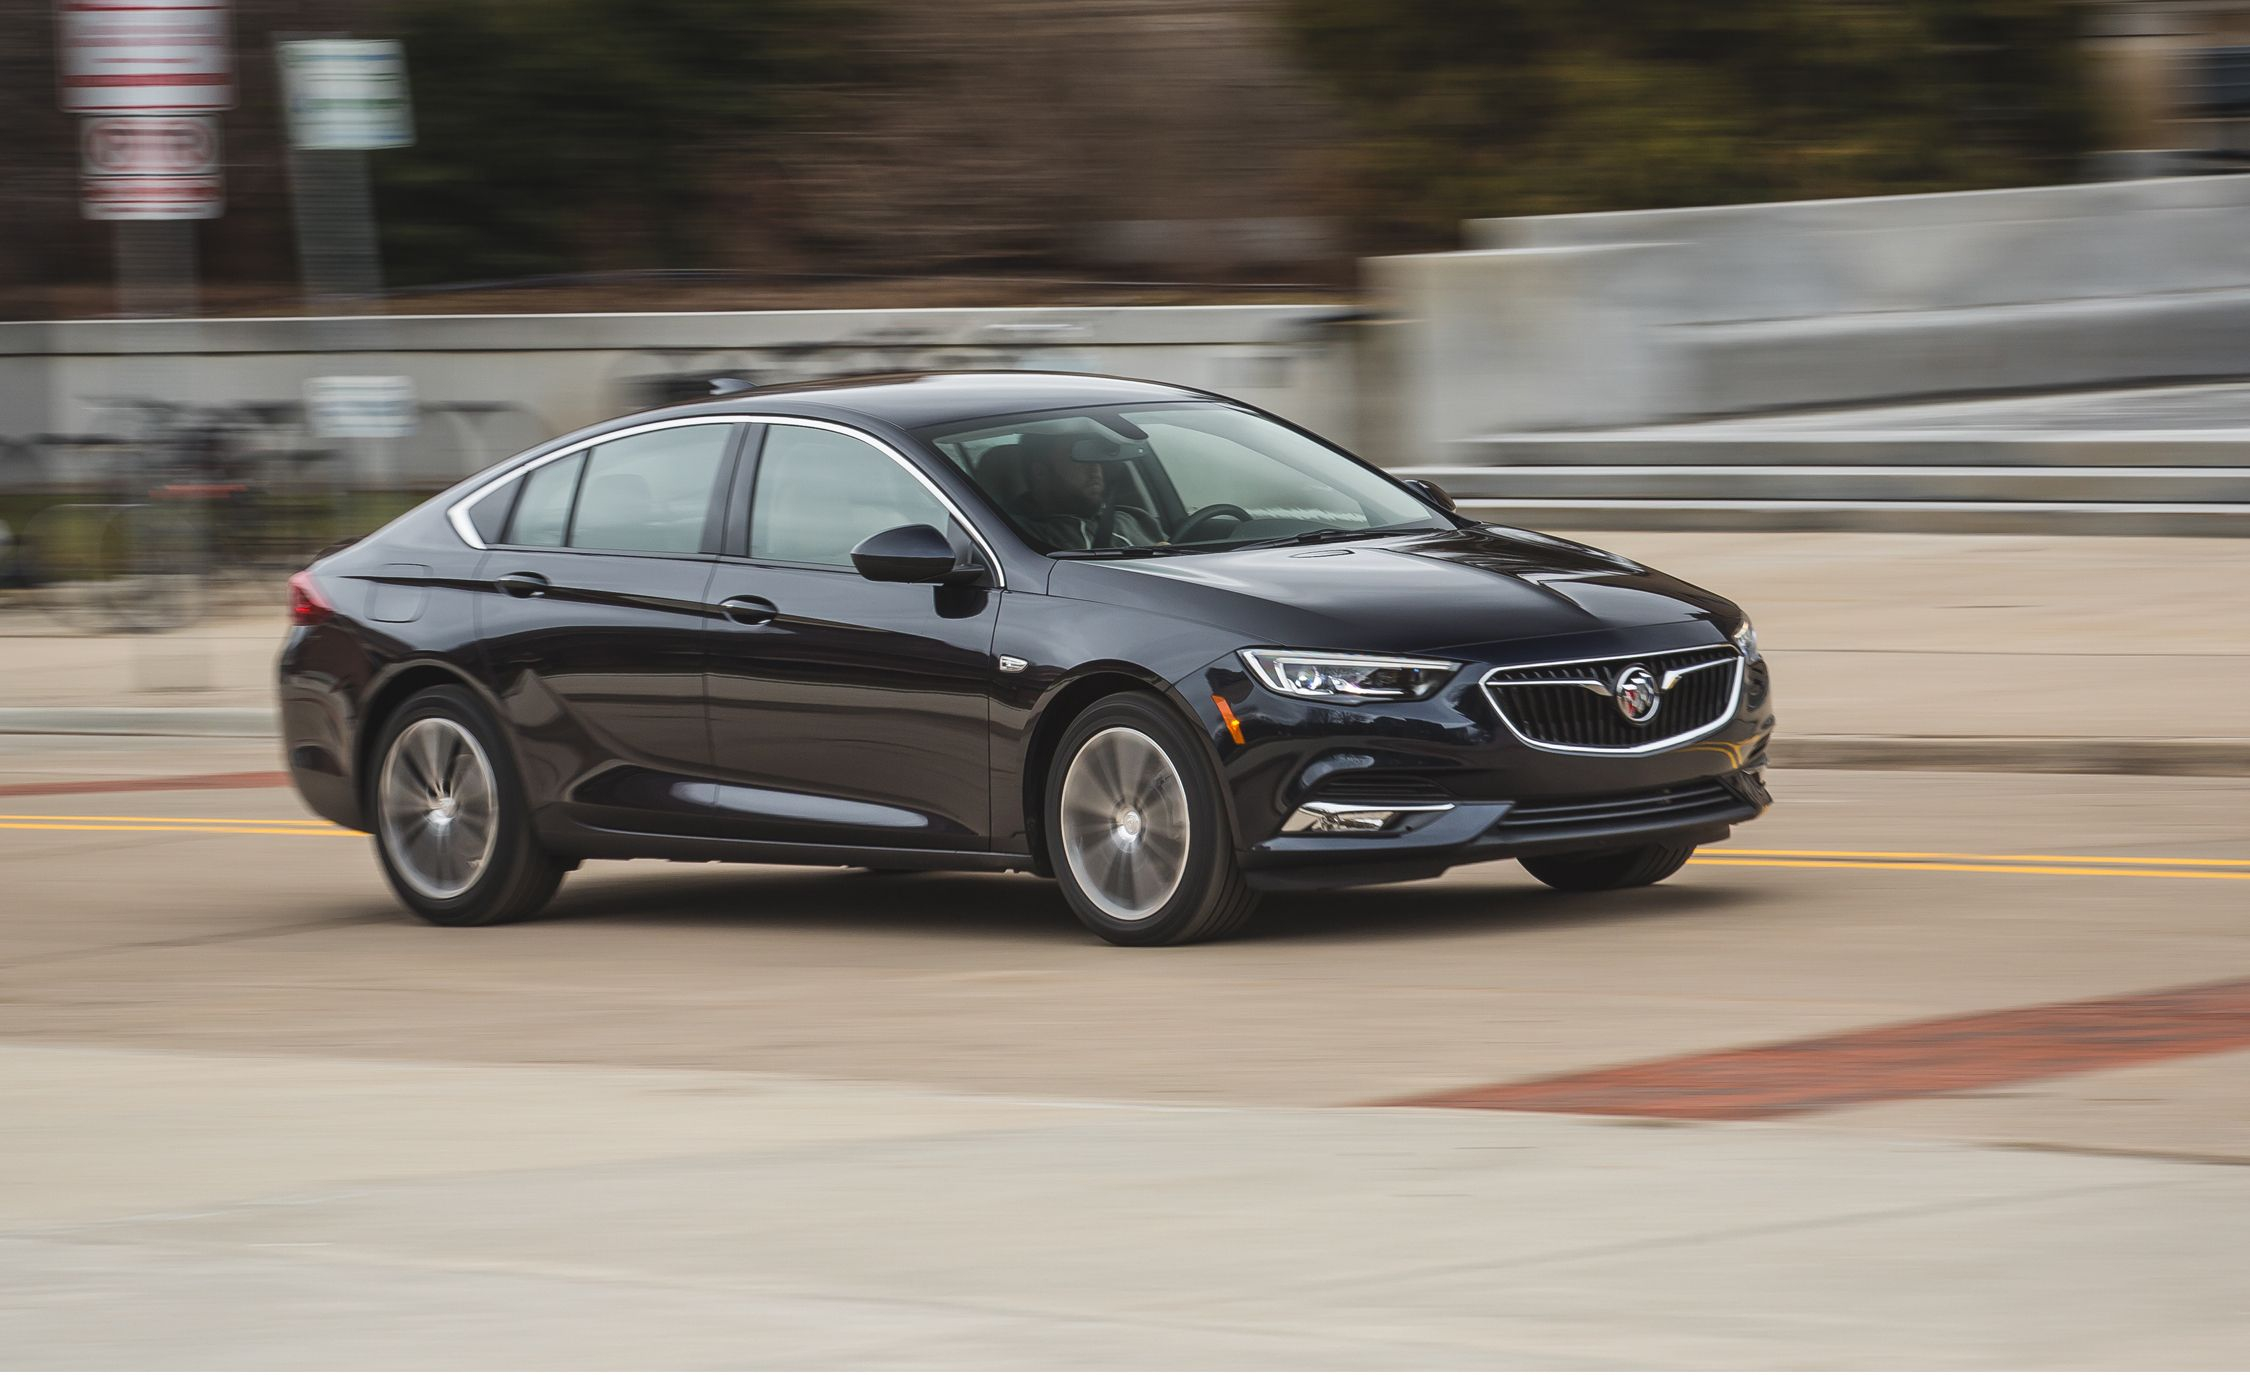 2018 Buick Regal Sportback Fwd Test | Review | Car And Driver New 2021 Buick Regal Sportback Review, Price, 0-60